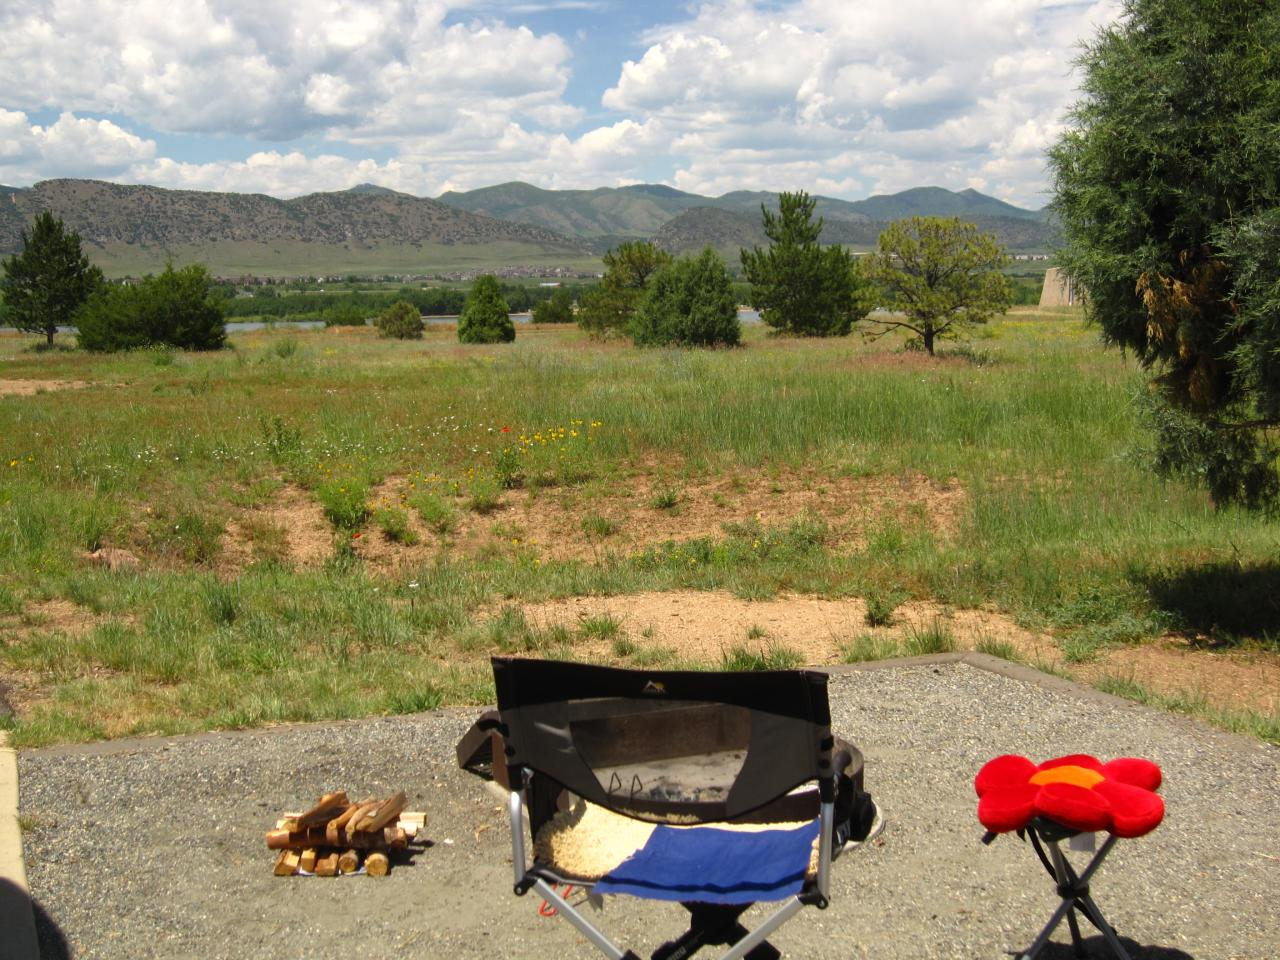 Camping at Chatfield, CO